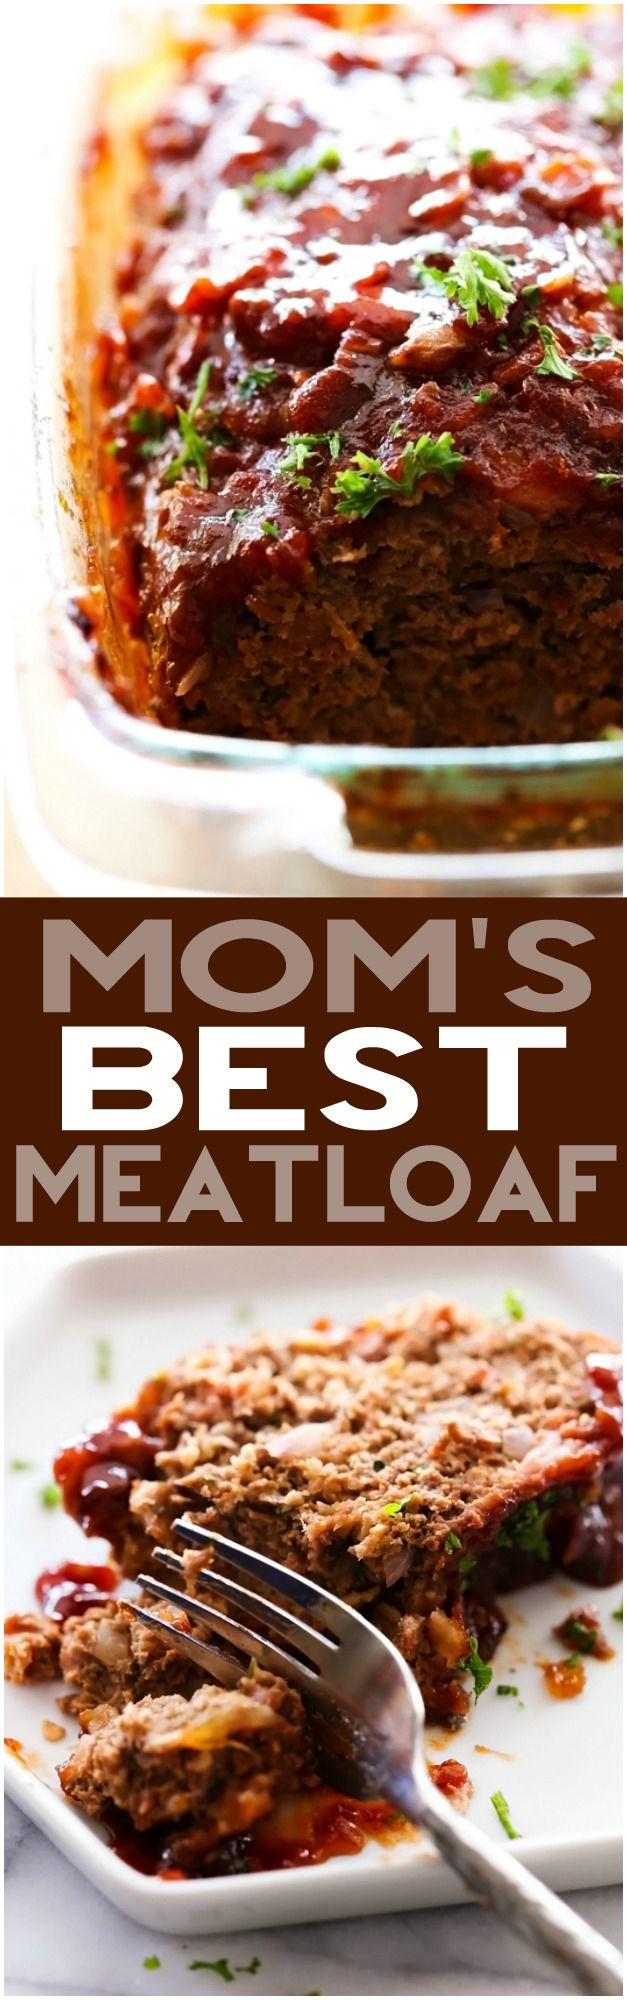 Mom's Best Meatloaf | Chef-In-Training | This meatloaf is packed with flavor! It is juicy, simple and loaded with yummy ingredients! It is by far my favorite meatloaf recipe!